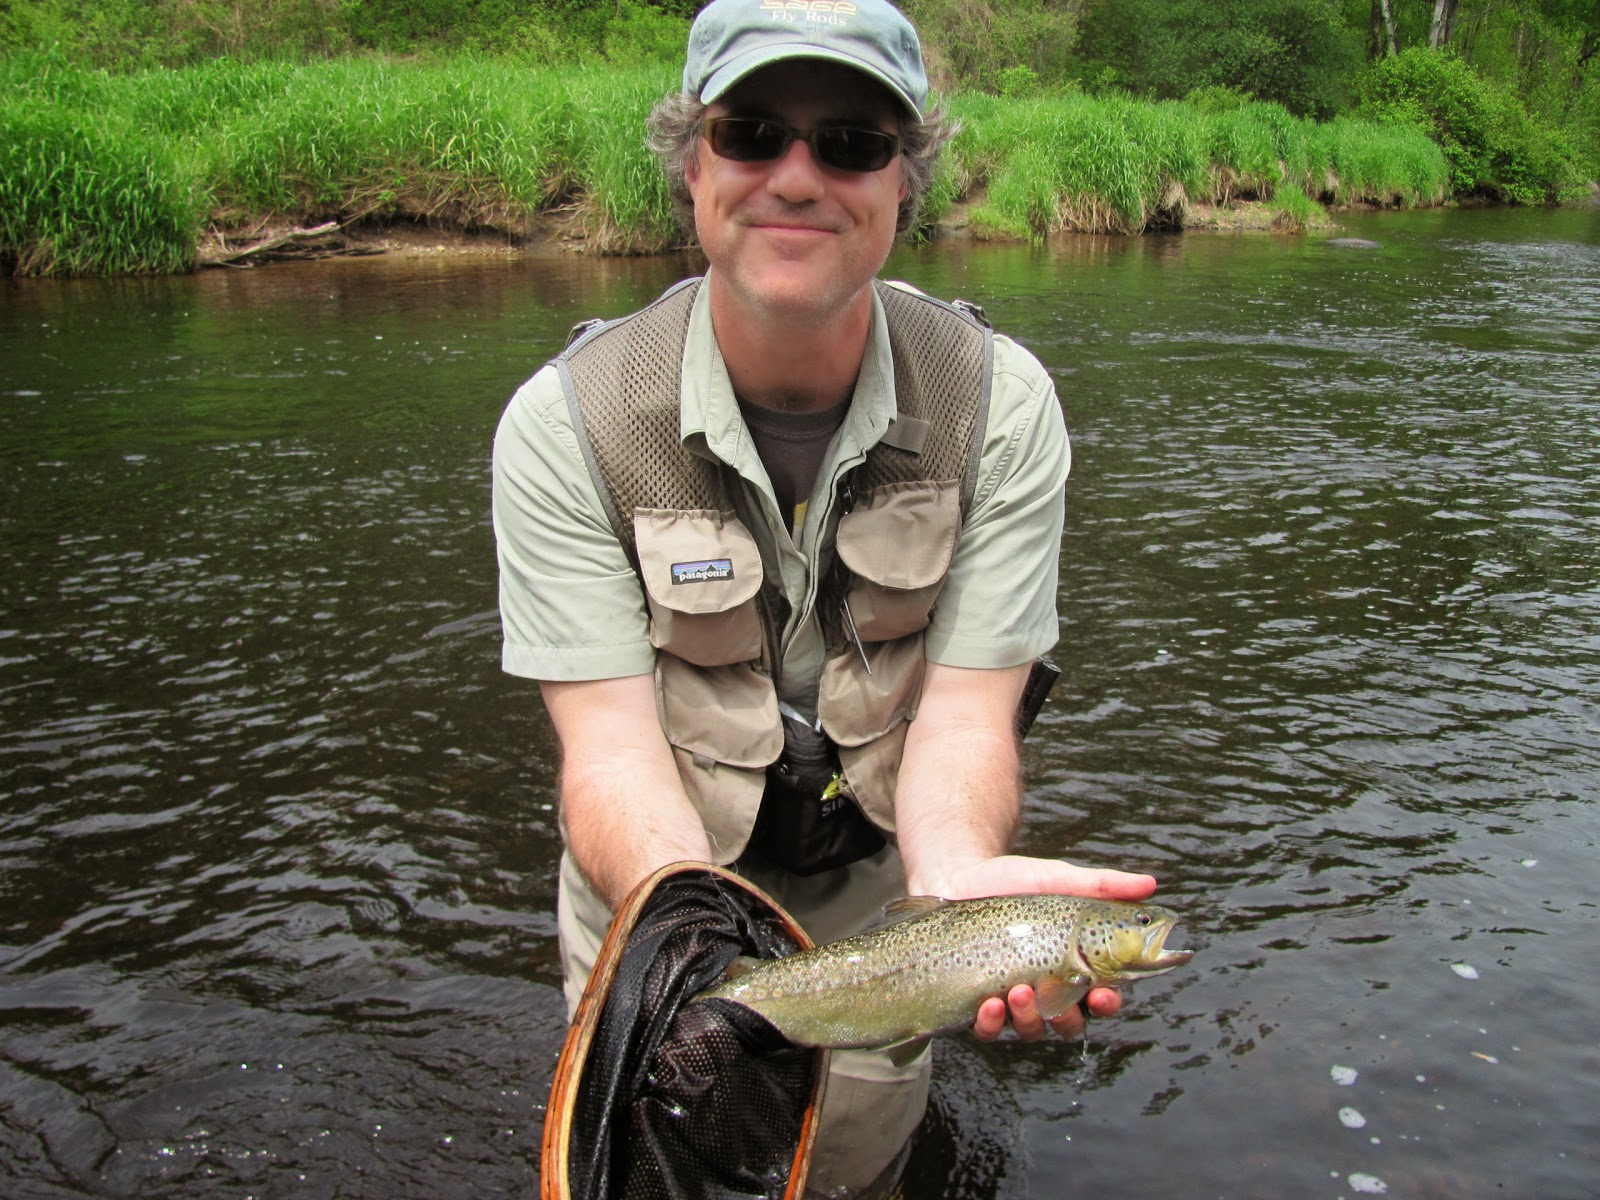 Millers swift and eb fly fishing forum welcome to trout for Swift river fly fishing